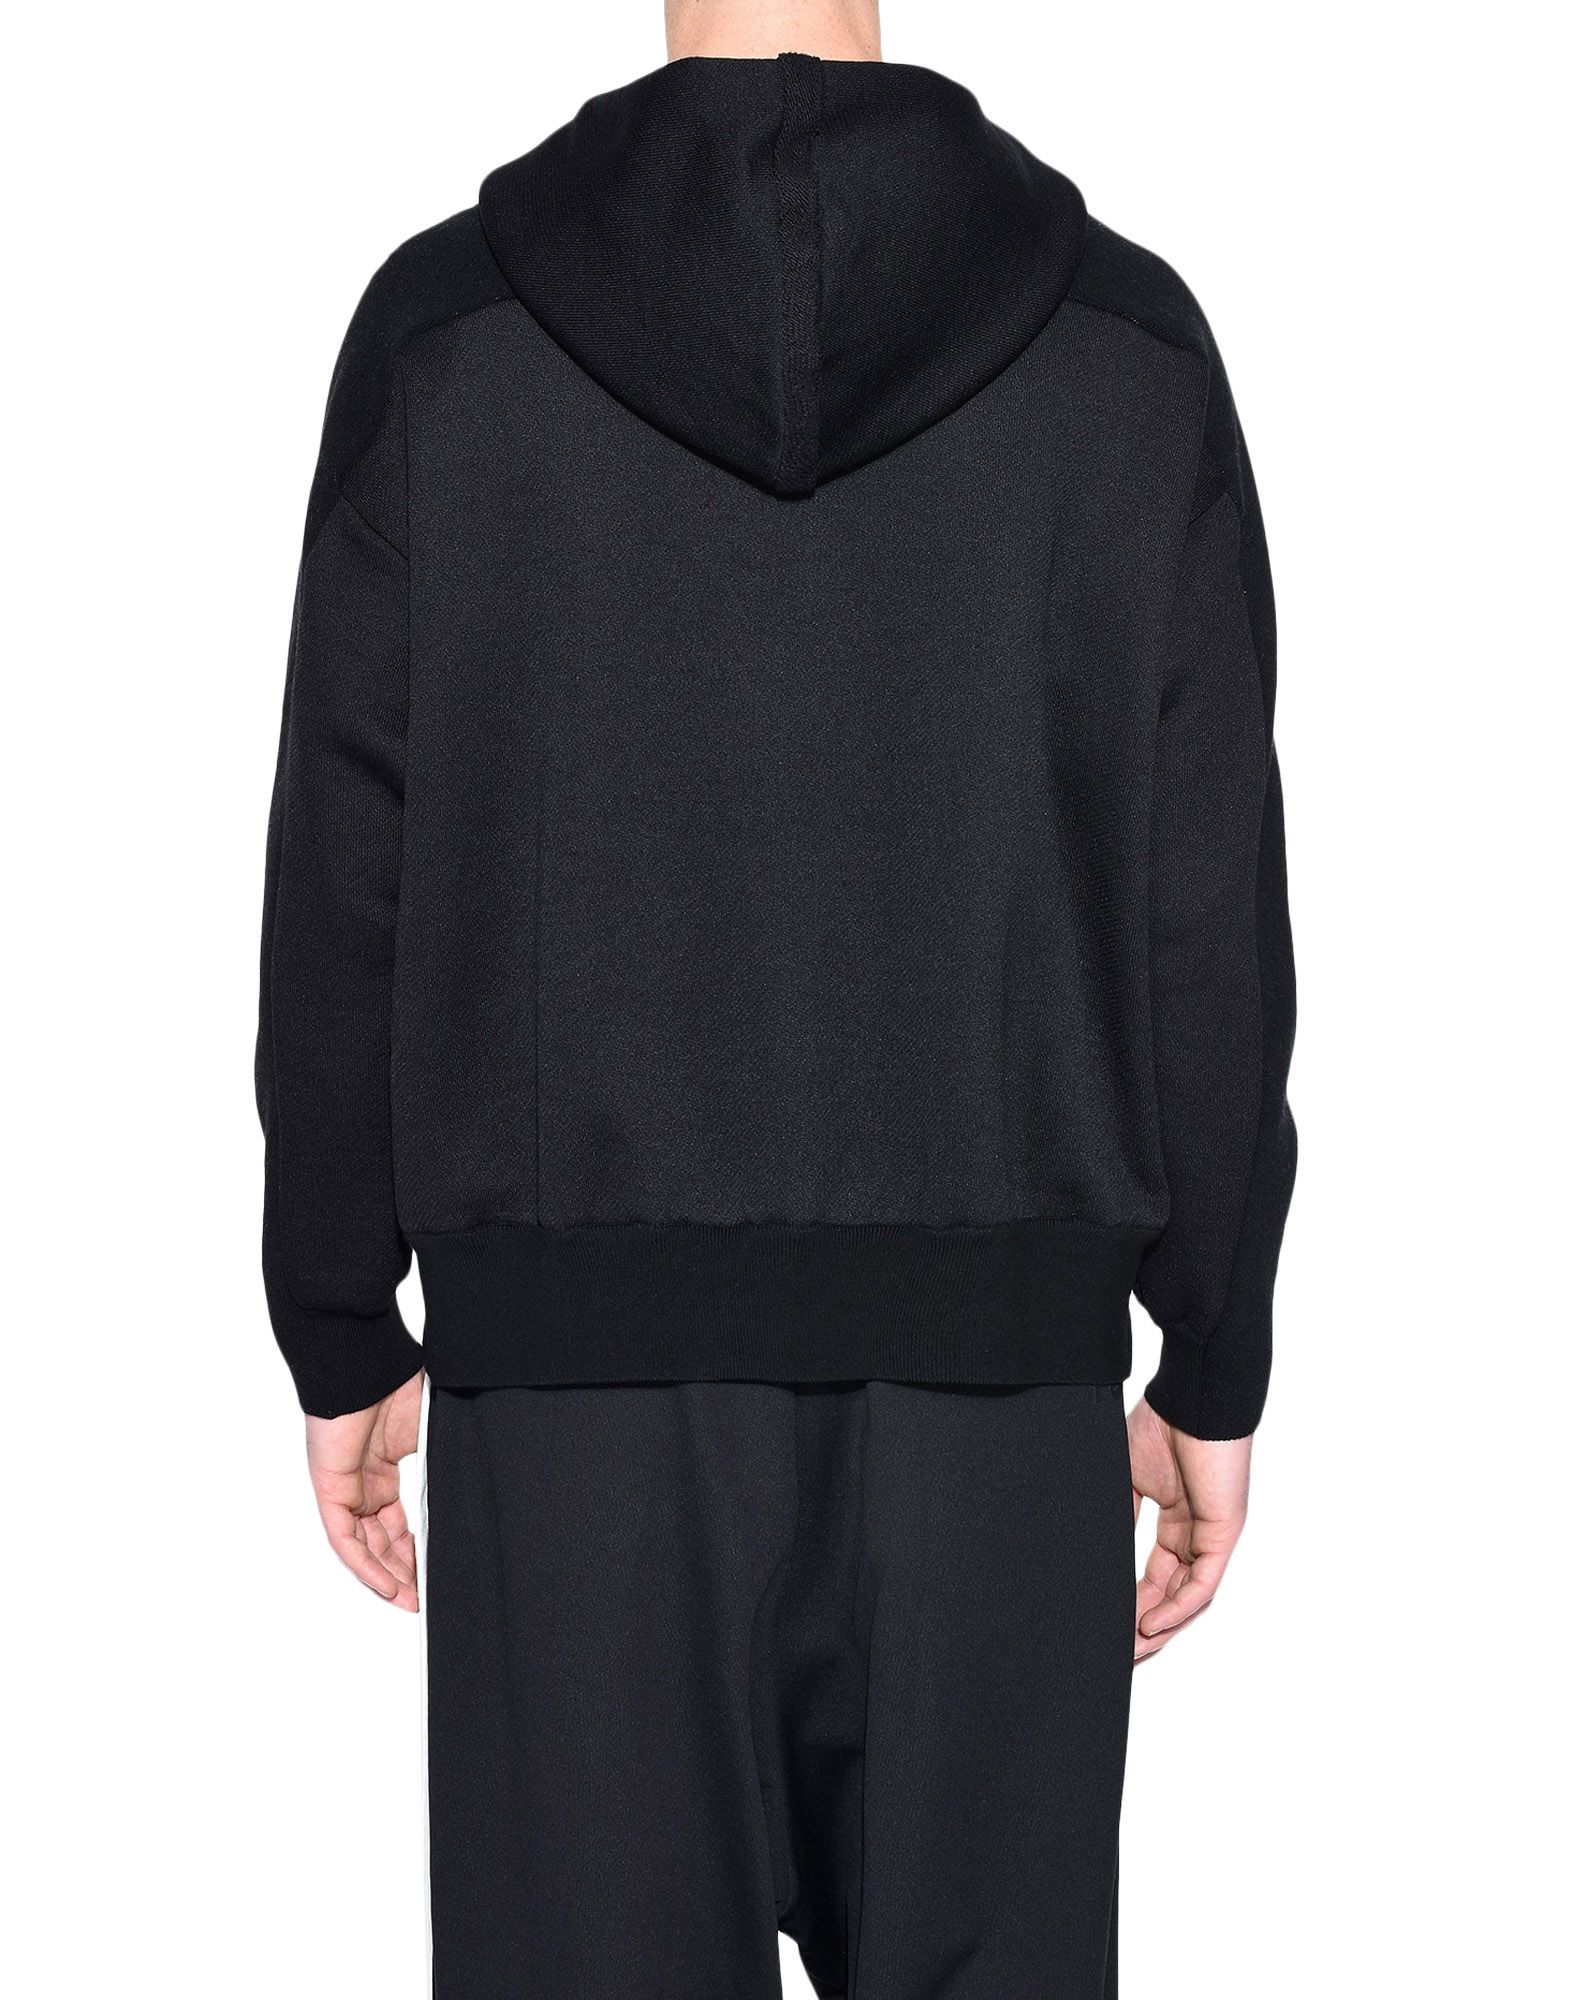 Y-3 Y-3 Knitted Stacked Logo Hoodie フード付きトレーナー メンズ d